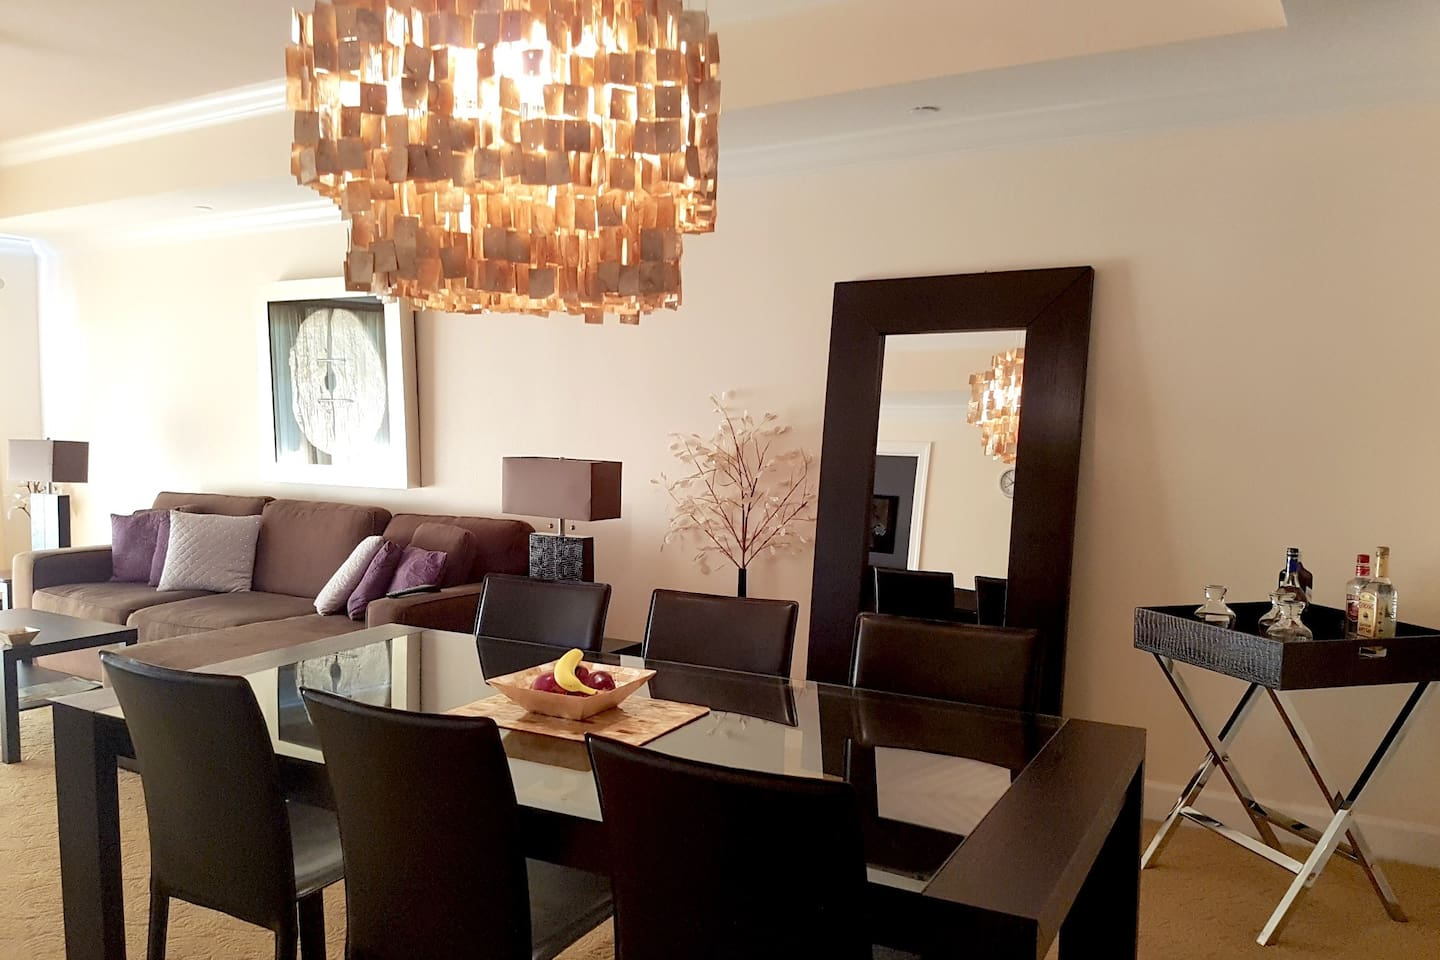 Luxurious and comfortable sitting and dining area.